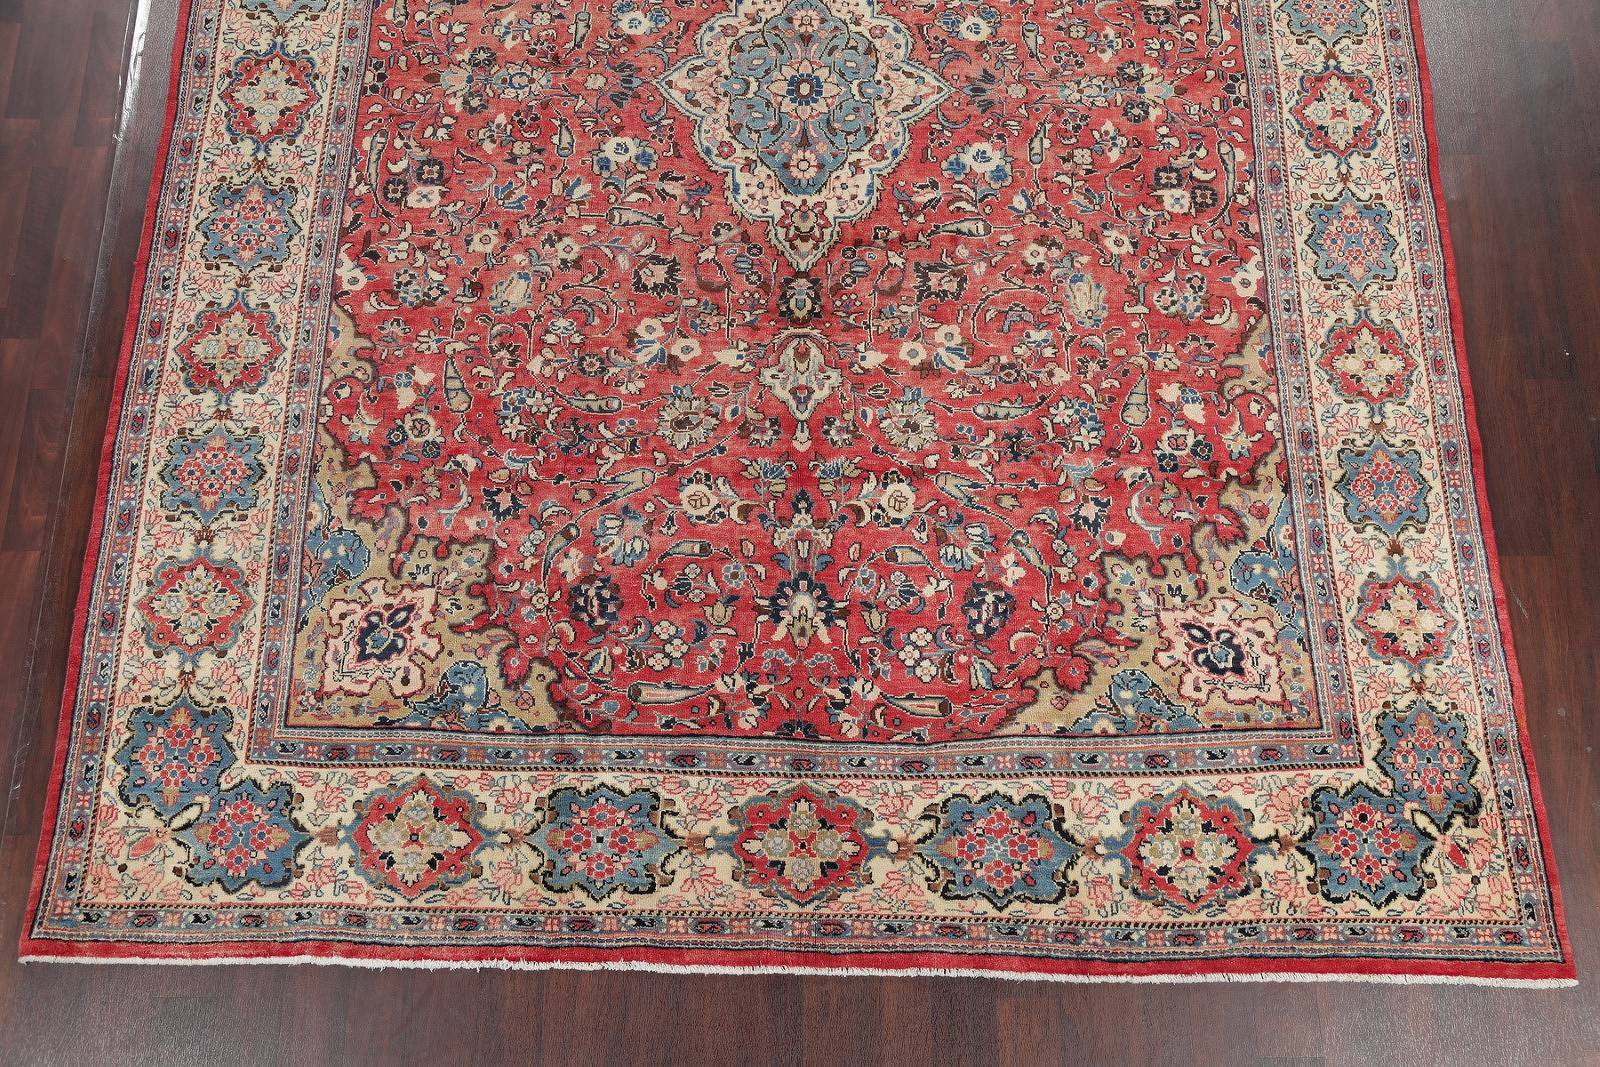 Antique Floral Sarouk Persian Hand-Knotted Area Rug Wool 10x13